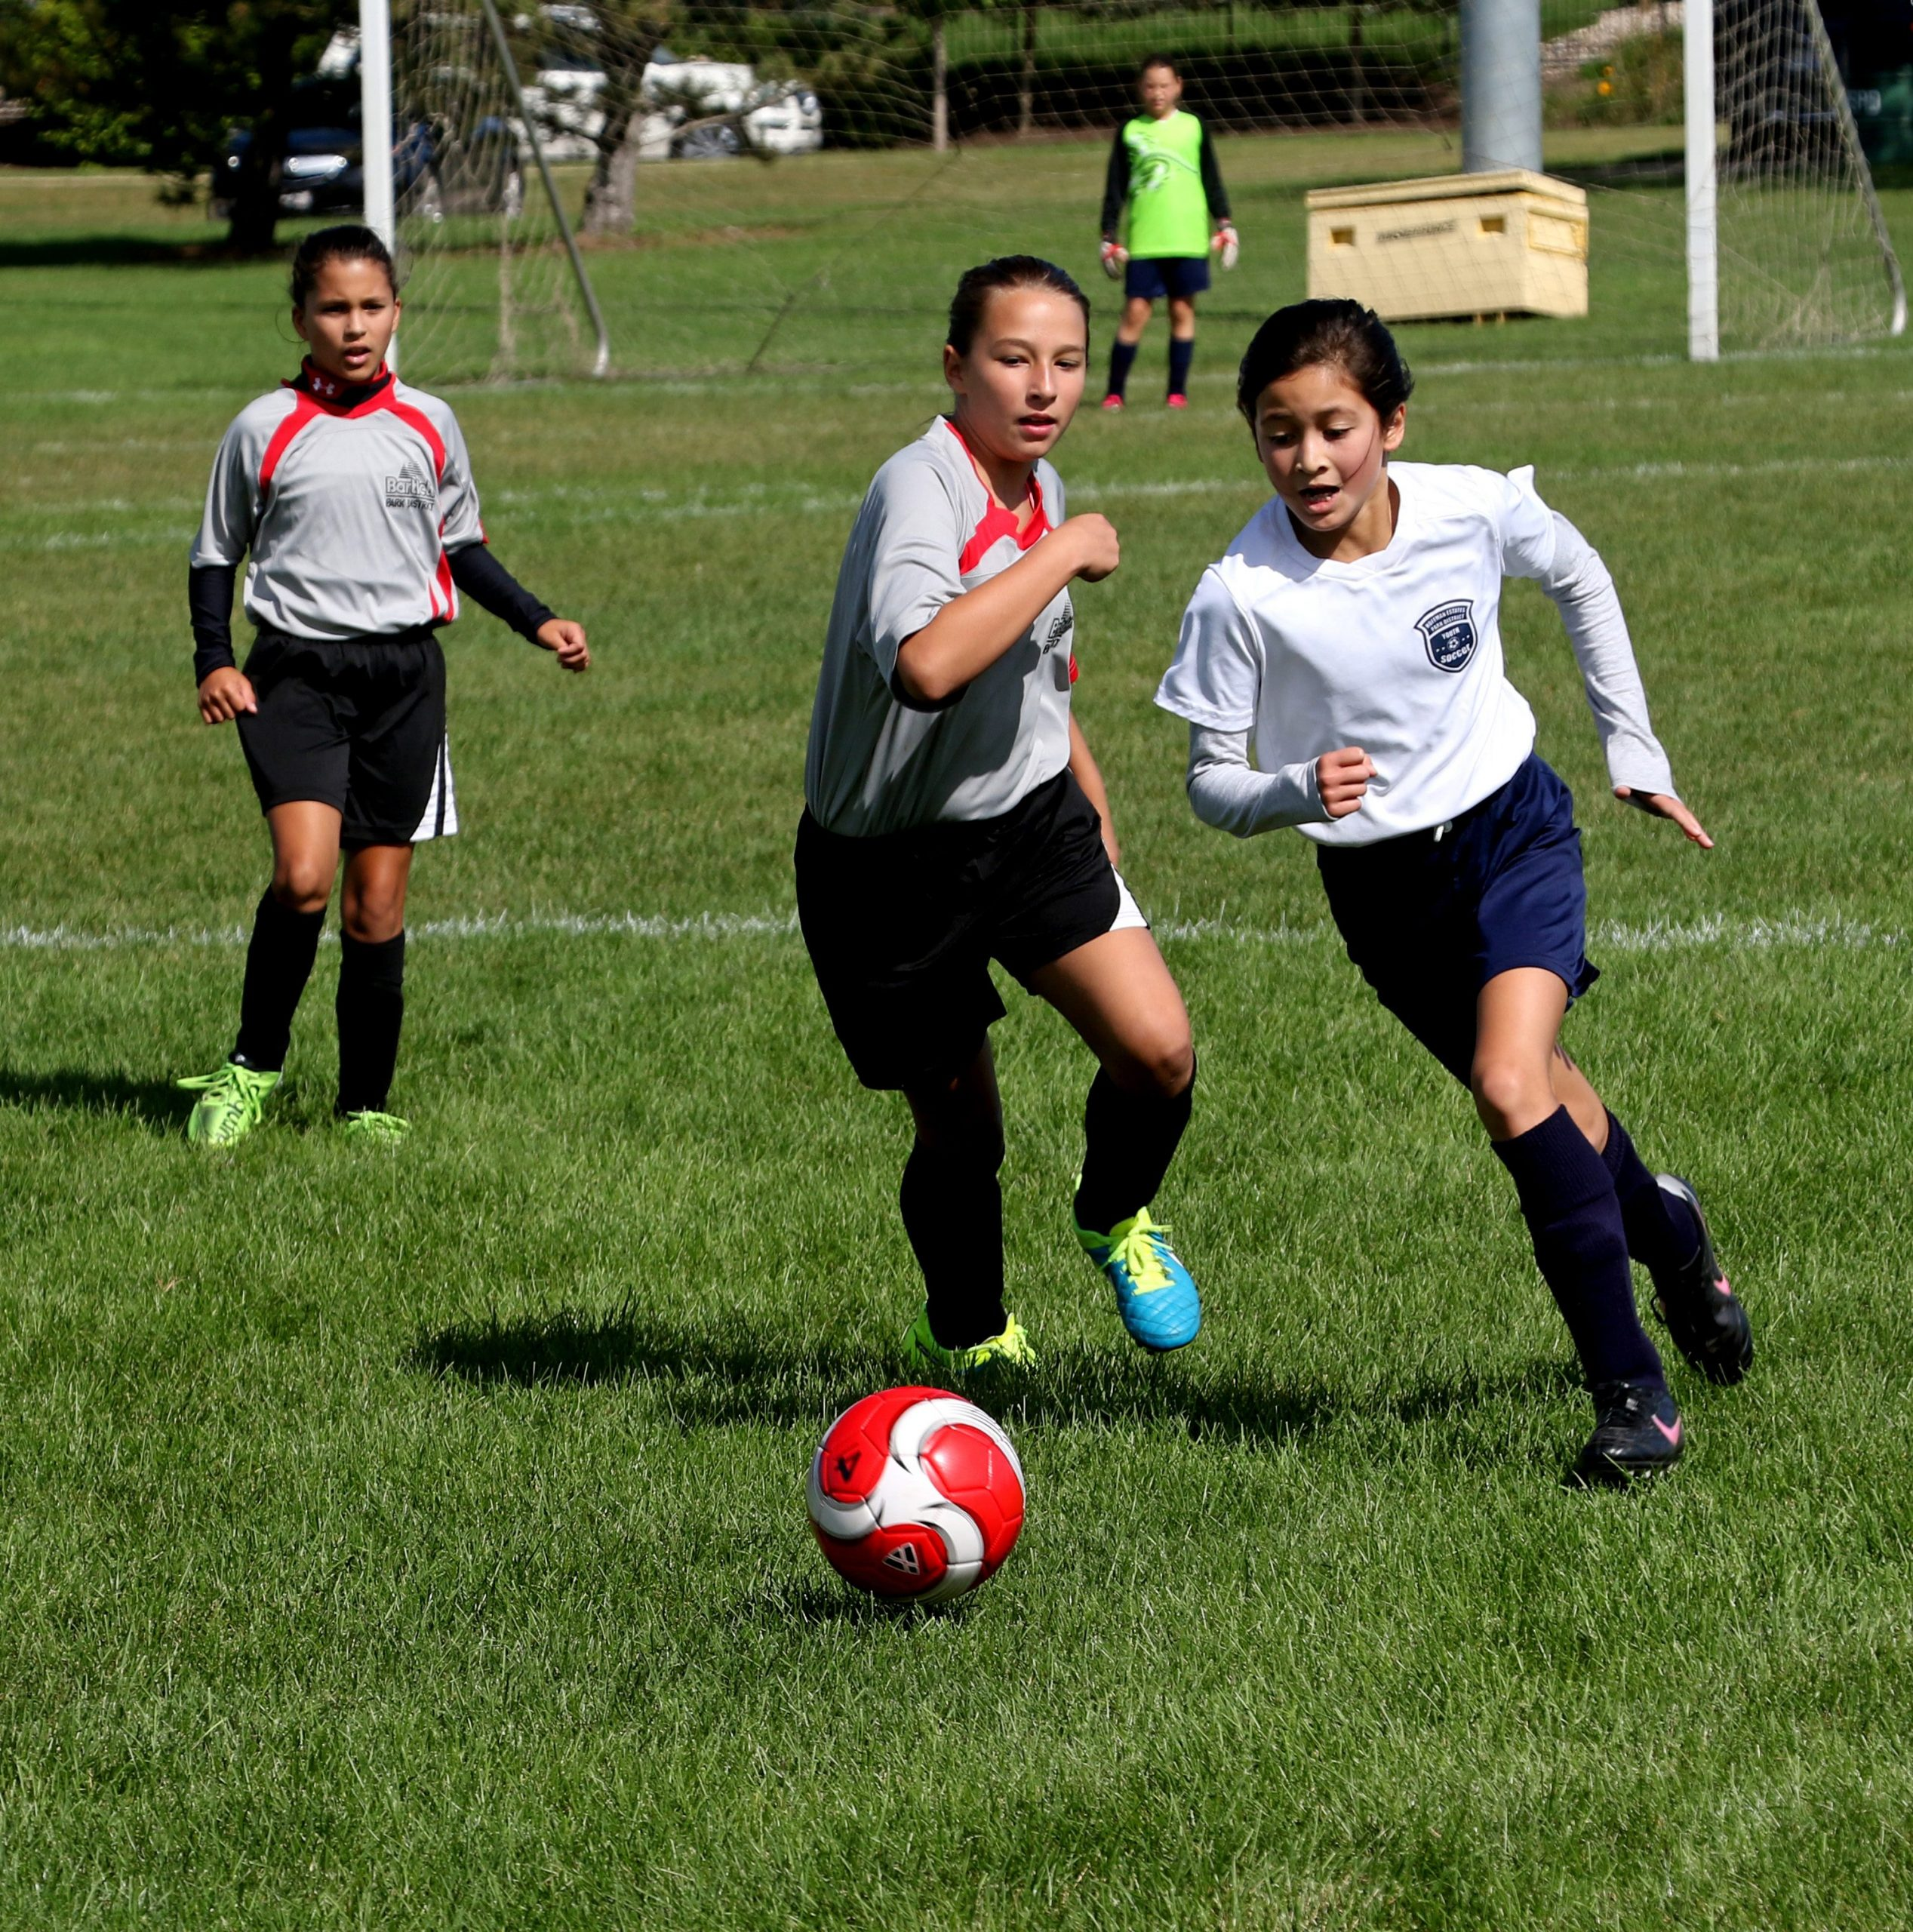 Fall Youth Soccer programs will run in the fall